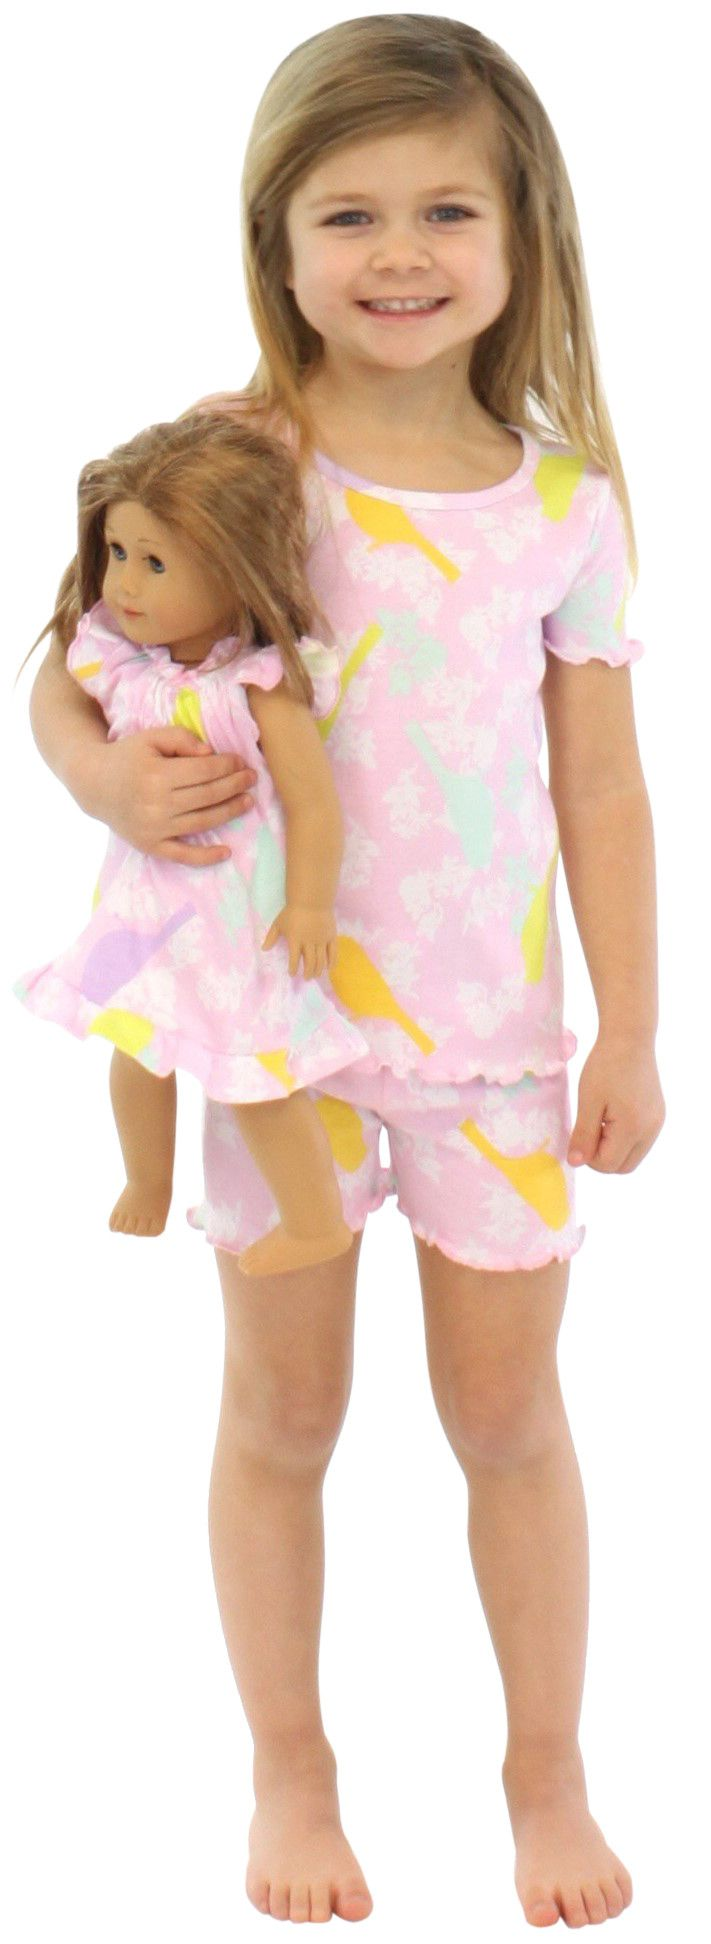 Babies and toddlers wiggle frequently beneath the blankets, which is why one-piece pajama sets are ideal for wiggly babies. Made from percent cotton, these single-piece pajamas are soft and snuggly. One-piece pajamas have long sleeves and cover the feet to keep baby warm all night long.